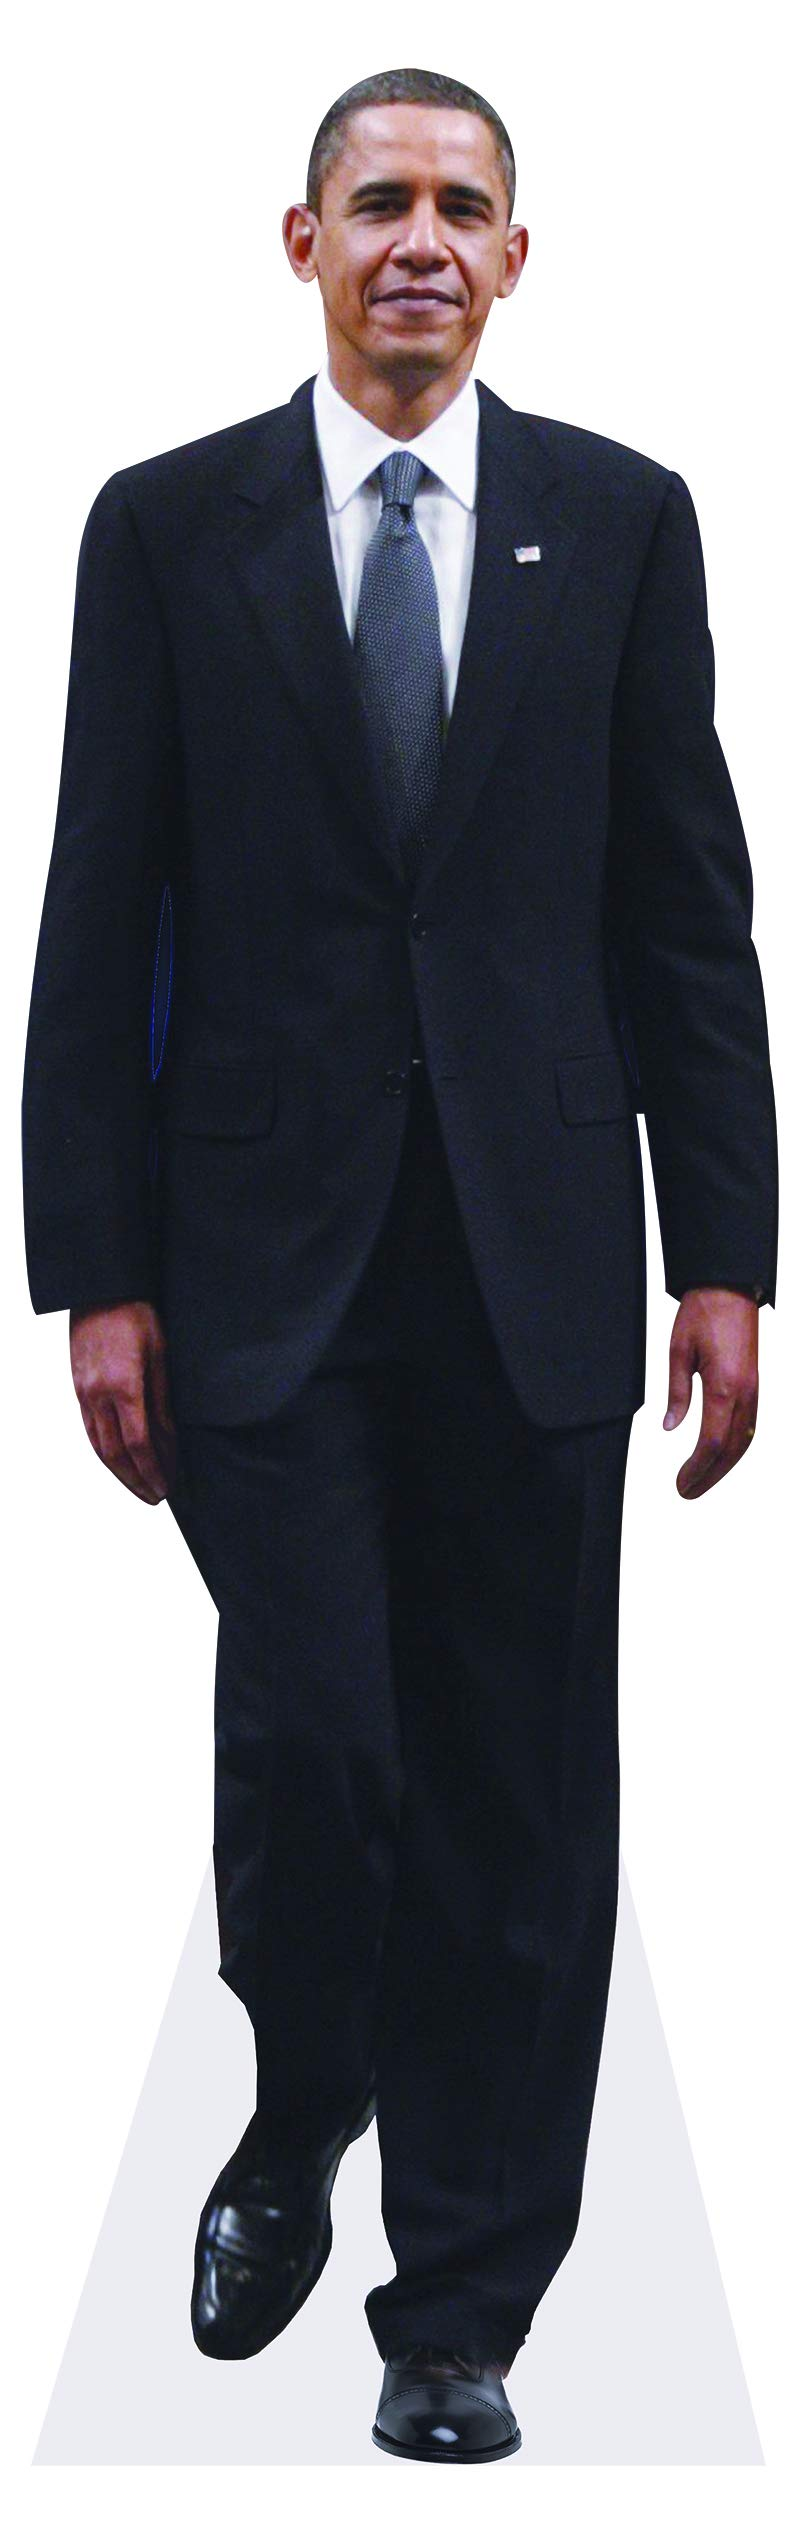 President Barack Obama Life-Size Standup Poster by aahs!! Engraving